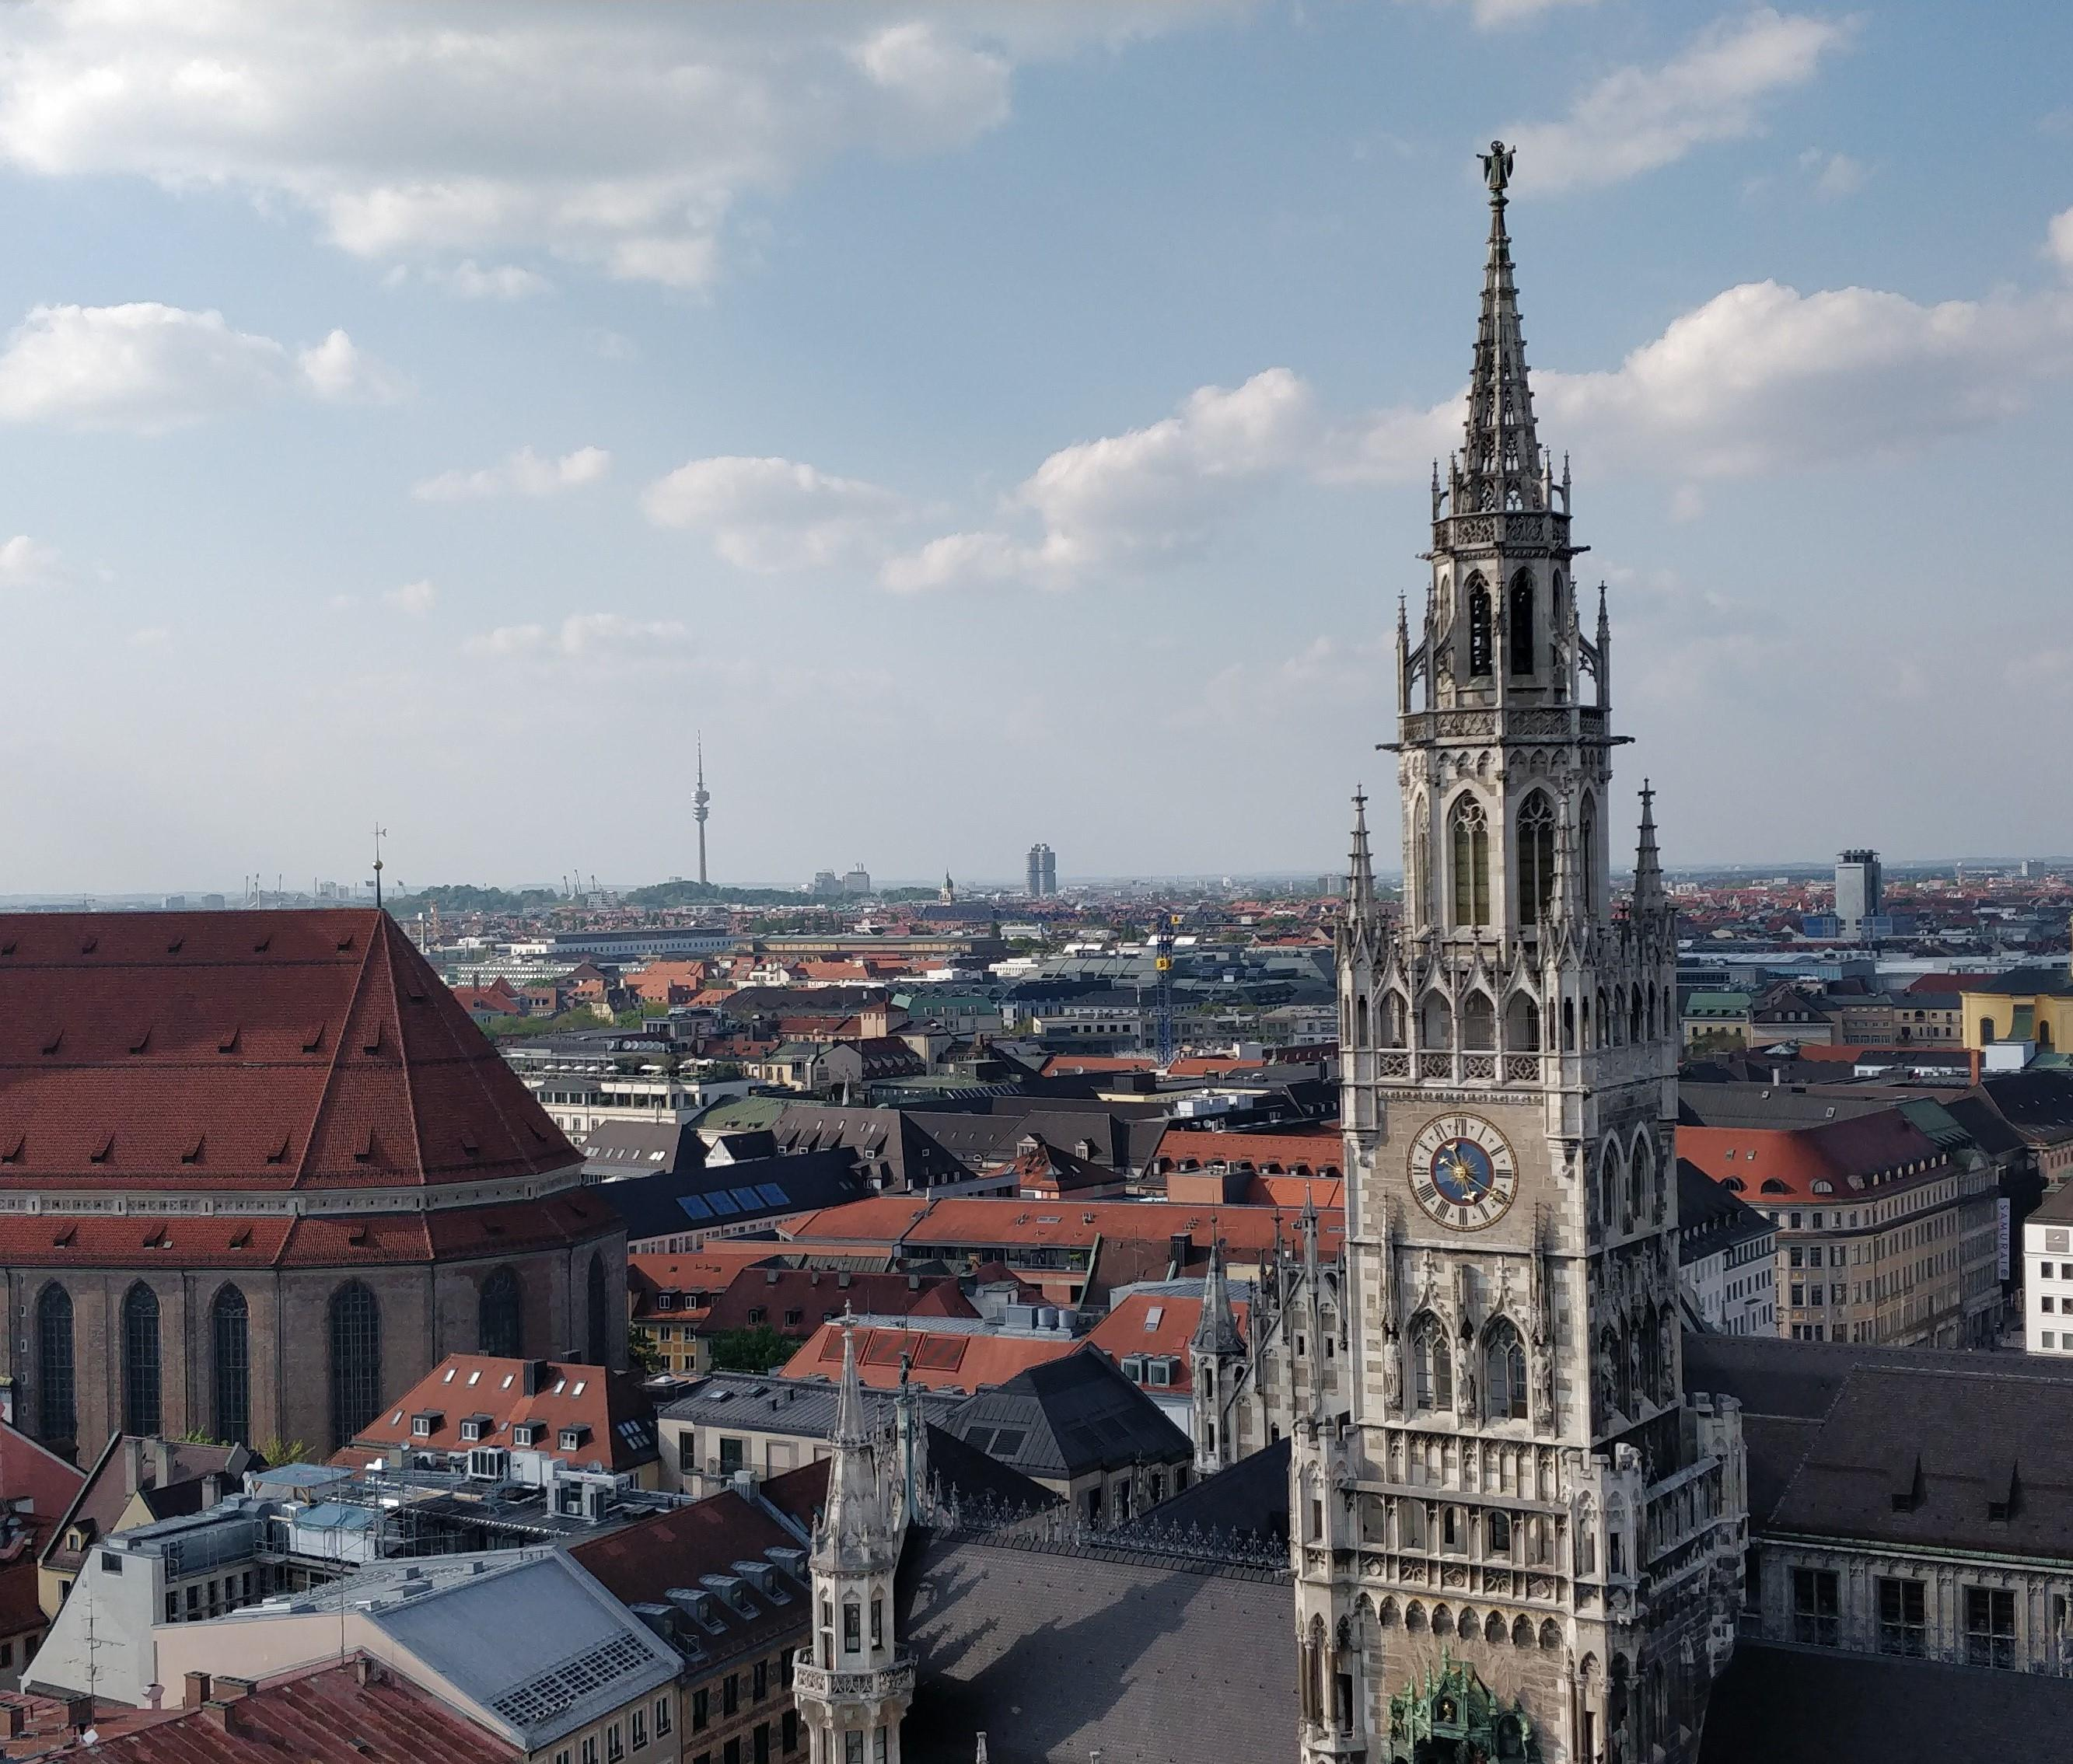 Free Tour of Munich's Old Town